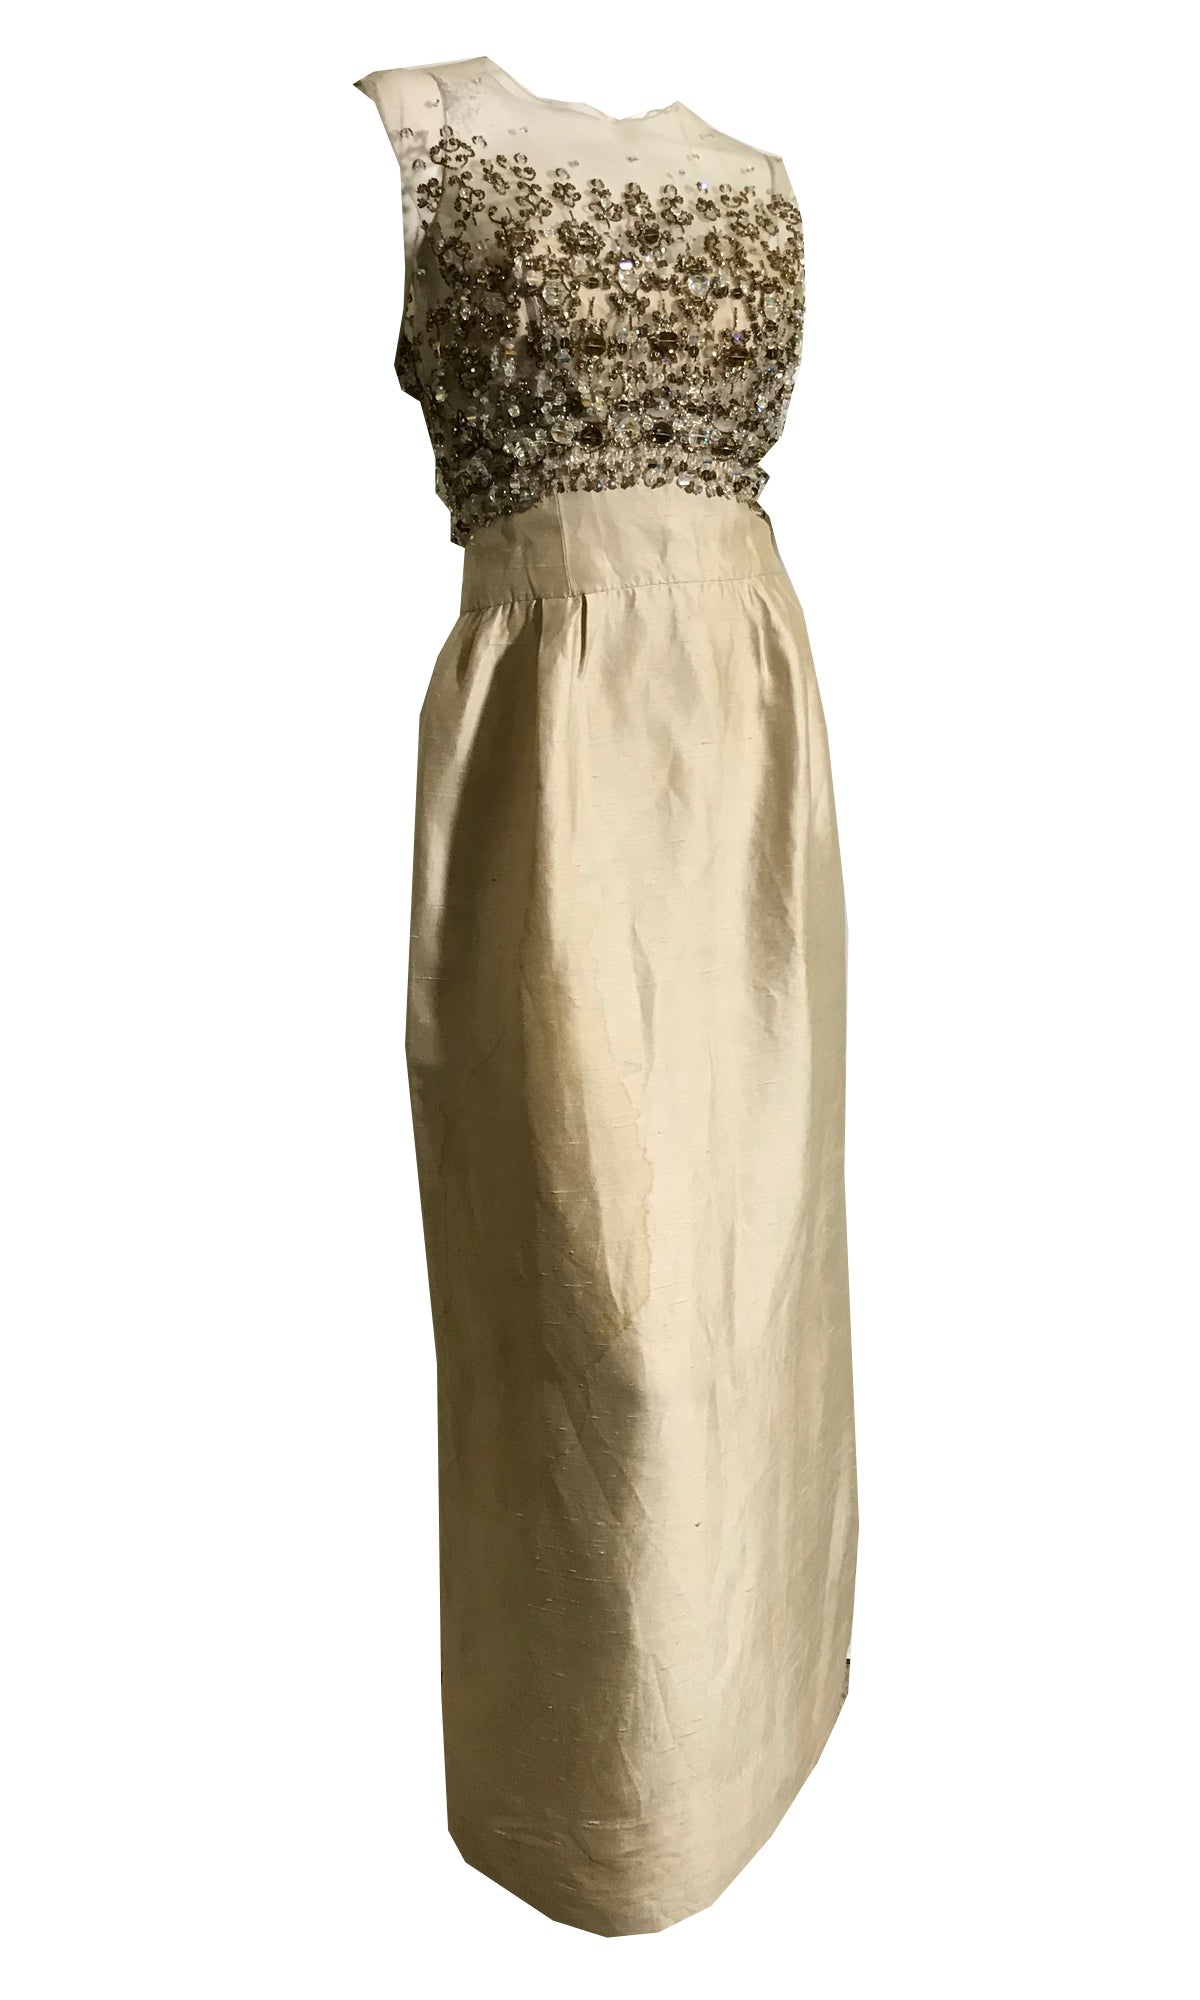 Rare Crystal Beaded Bodice Candlight Silk Sleeveless Evening Gown circa 1960s John Kavanagh